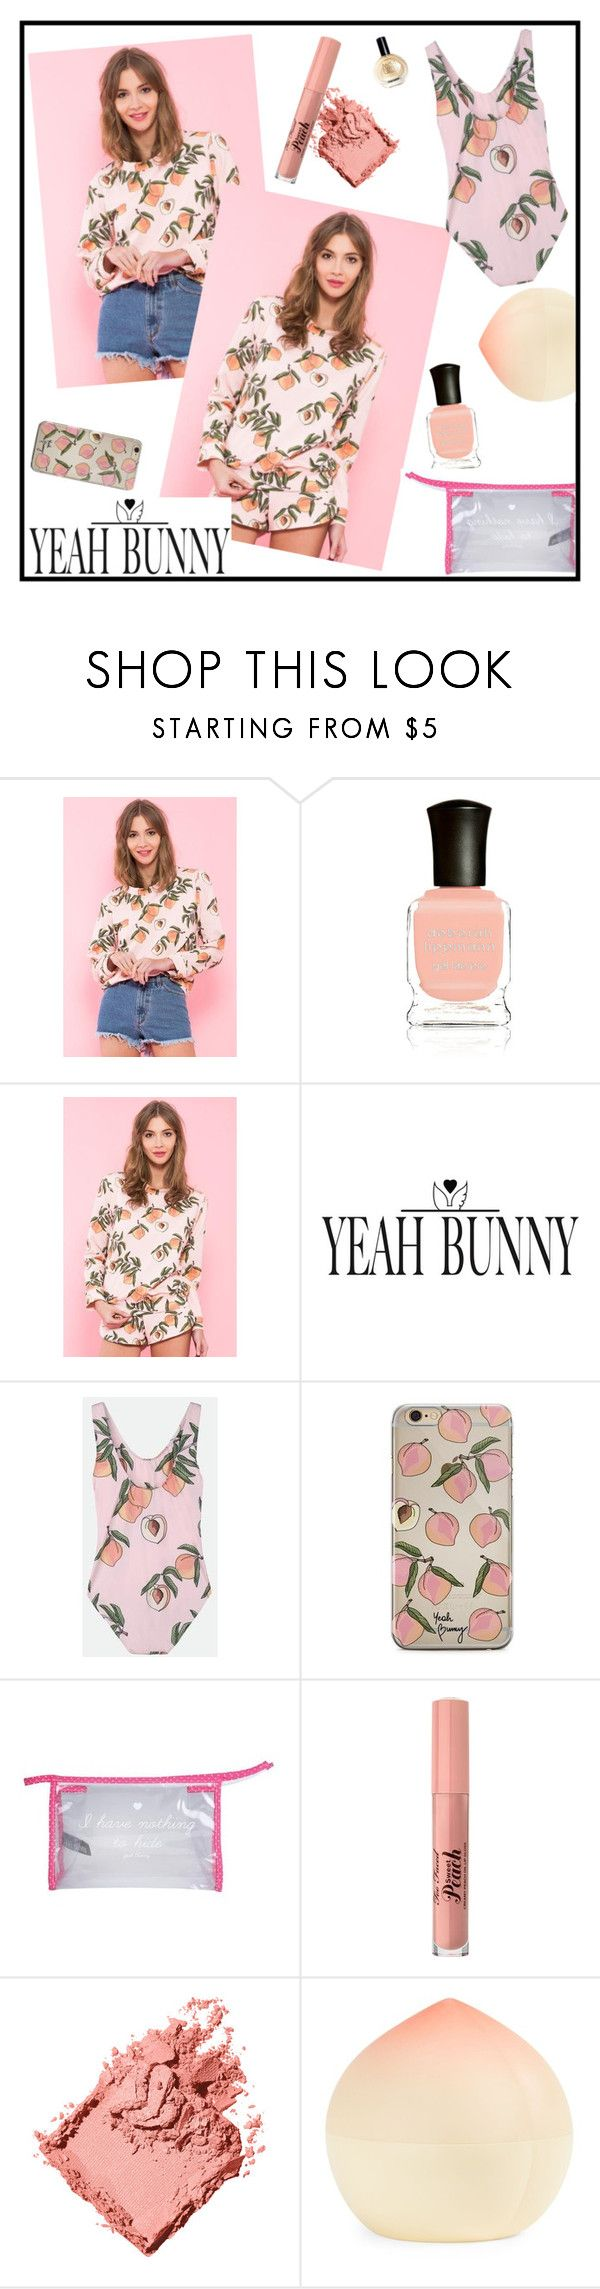 """YEAH BUNNY contest with prize!-90$ gift coupon"" by alignmentmag ❤ liked on Polyvore featuring Deborah Lippmann, Yeah Bunny, Too Faced Cosmetics, Bobbi Brown Cosmetics, Tony Moly and YeahBunny"